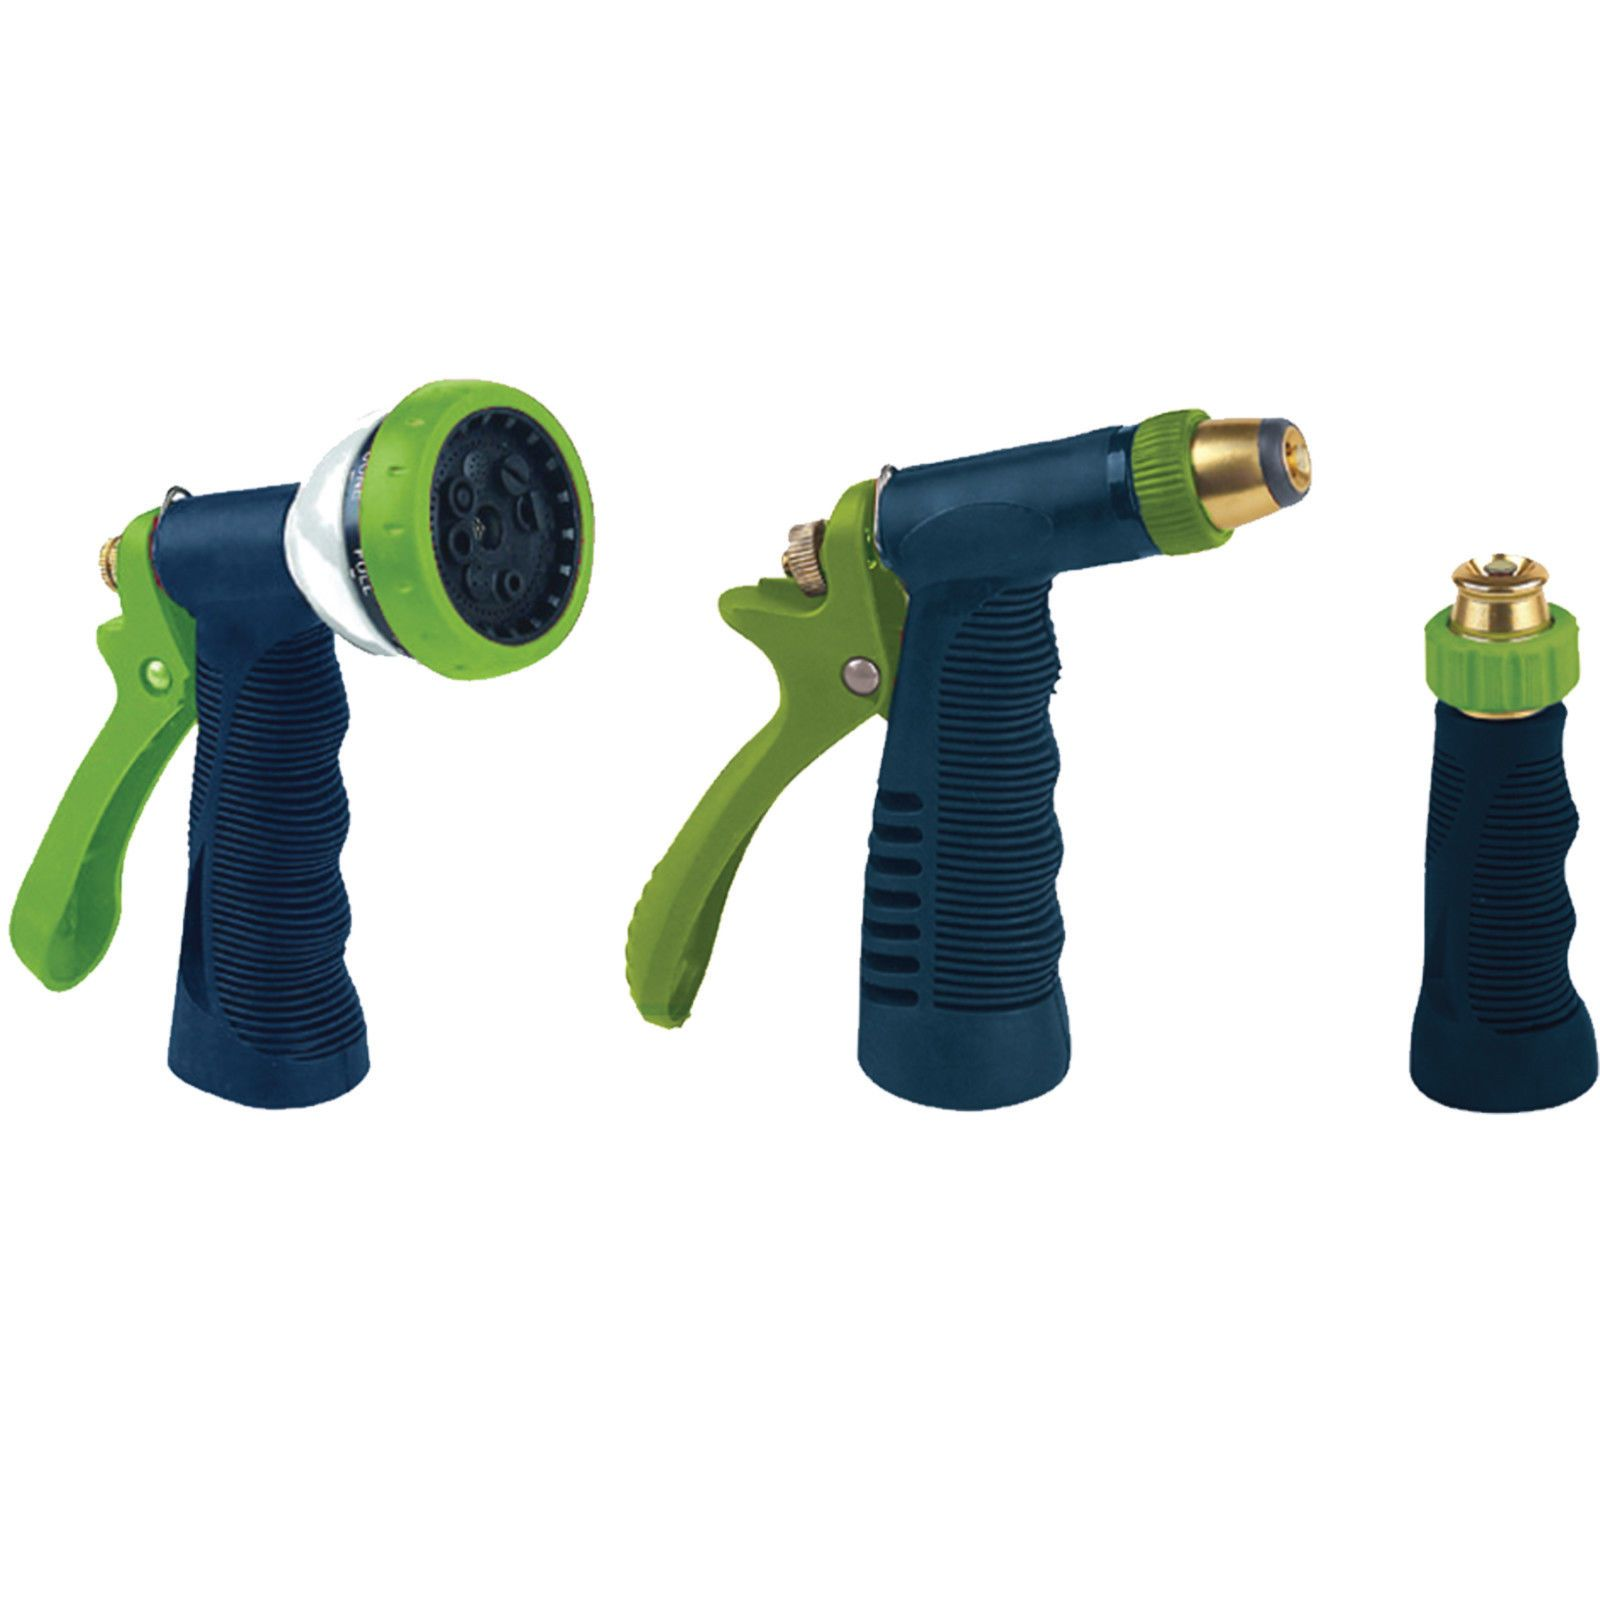 Recomeneded Ray Padula Hose Nozzle Combo Pack 3 Pack Metal Garden Water Spray Pressure Sprinkler Washer Garden Outdoor Lawn Yard Gardening Hand Tool Equipment Rp